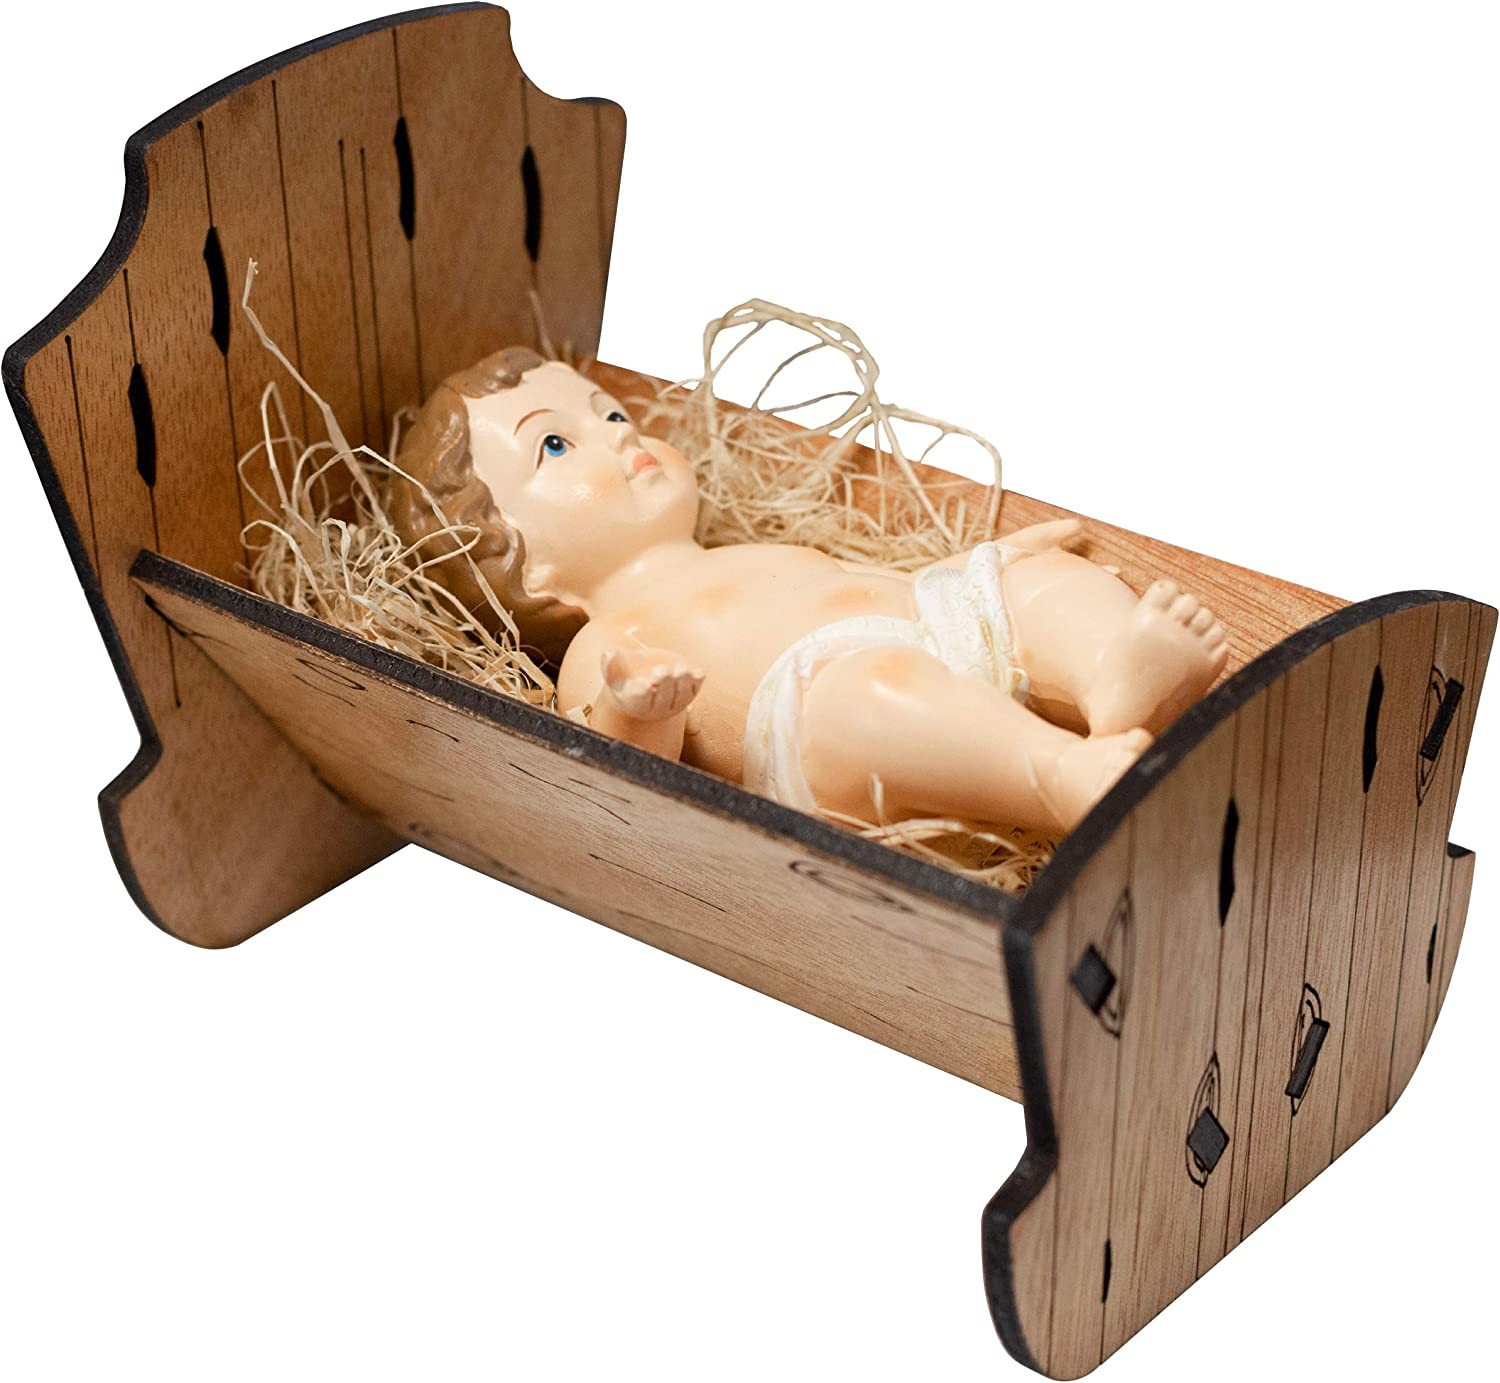 Baby Jesus in Manger | Perfect for Indoor Nativity Scene | Traditional Religious Christmas Decoration | Wooden Manger with Removable Baby Jesus | Great Gift | Choose from 3 Sizes (Large)